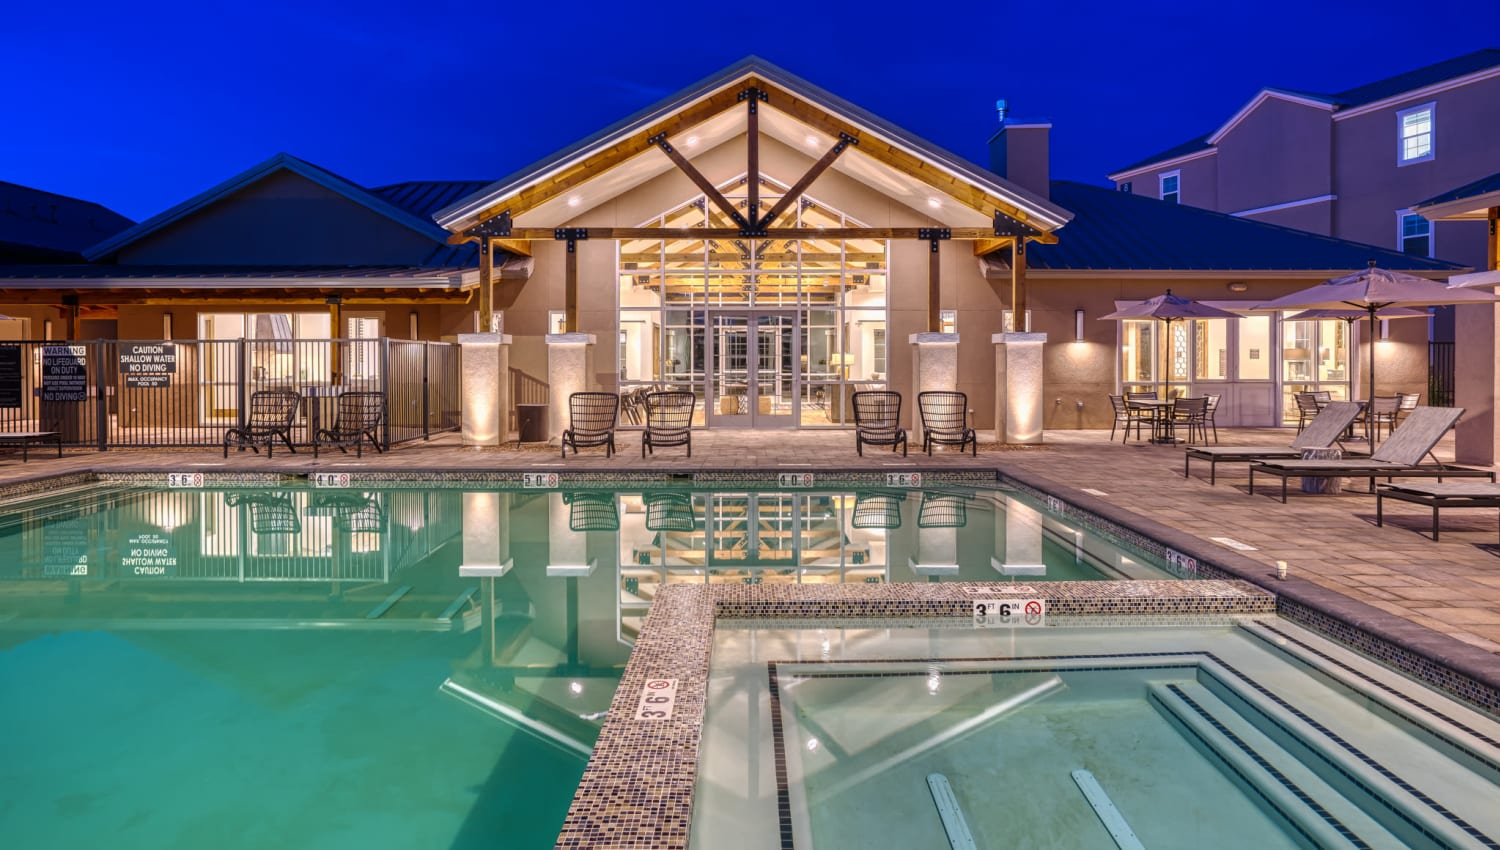 Exterior view of our luxury swimming pool at Olympus Rodeo in Santa Fe, New Mexico